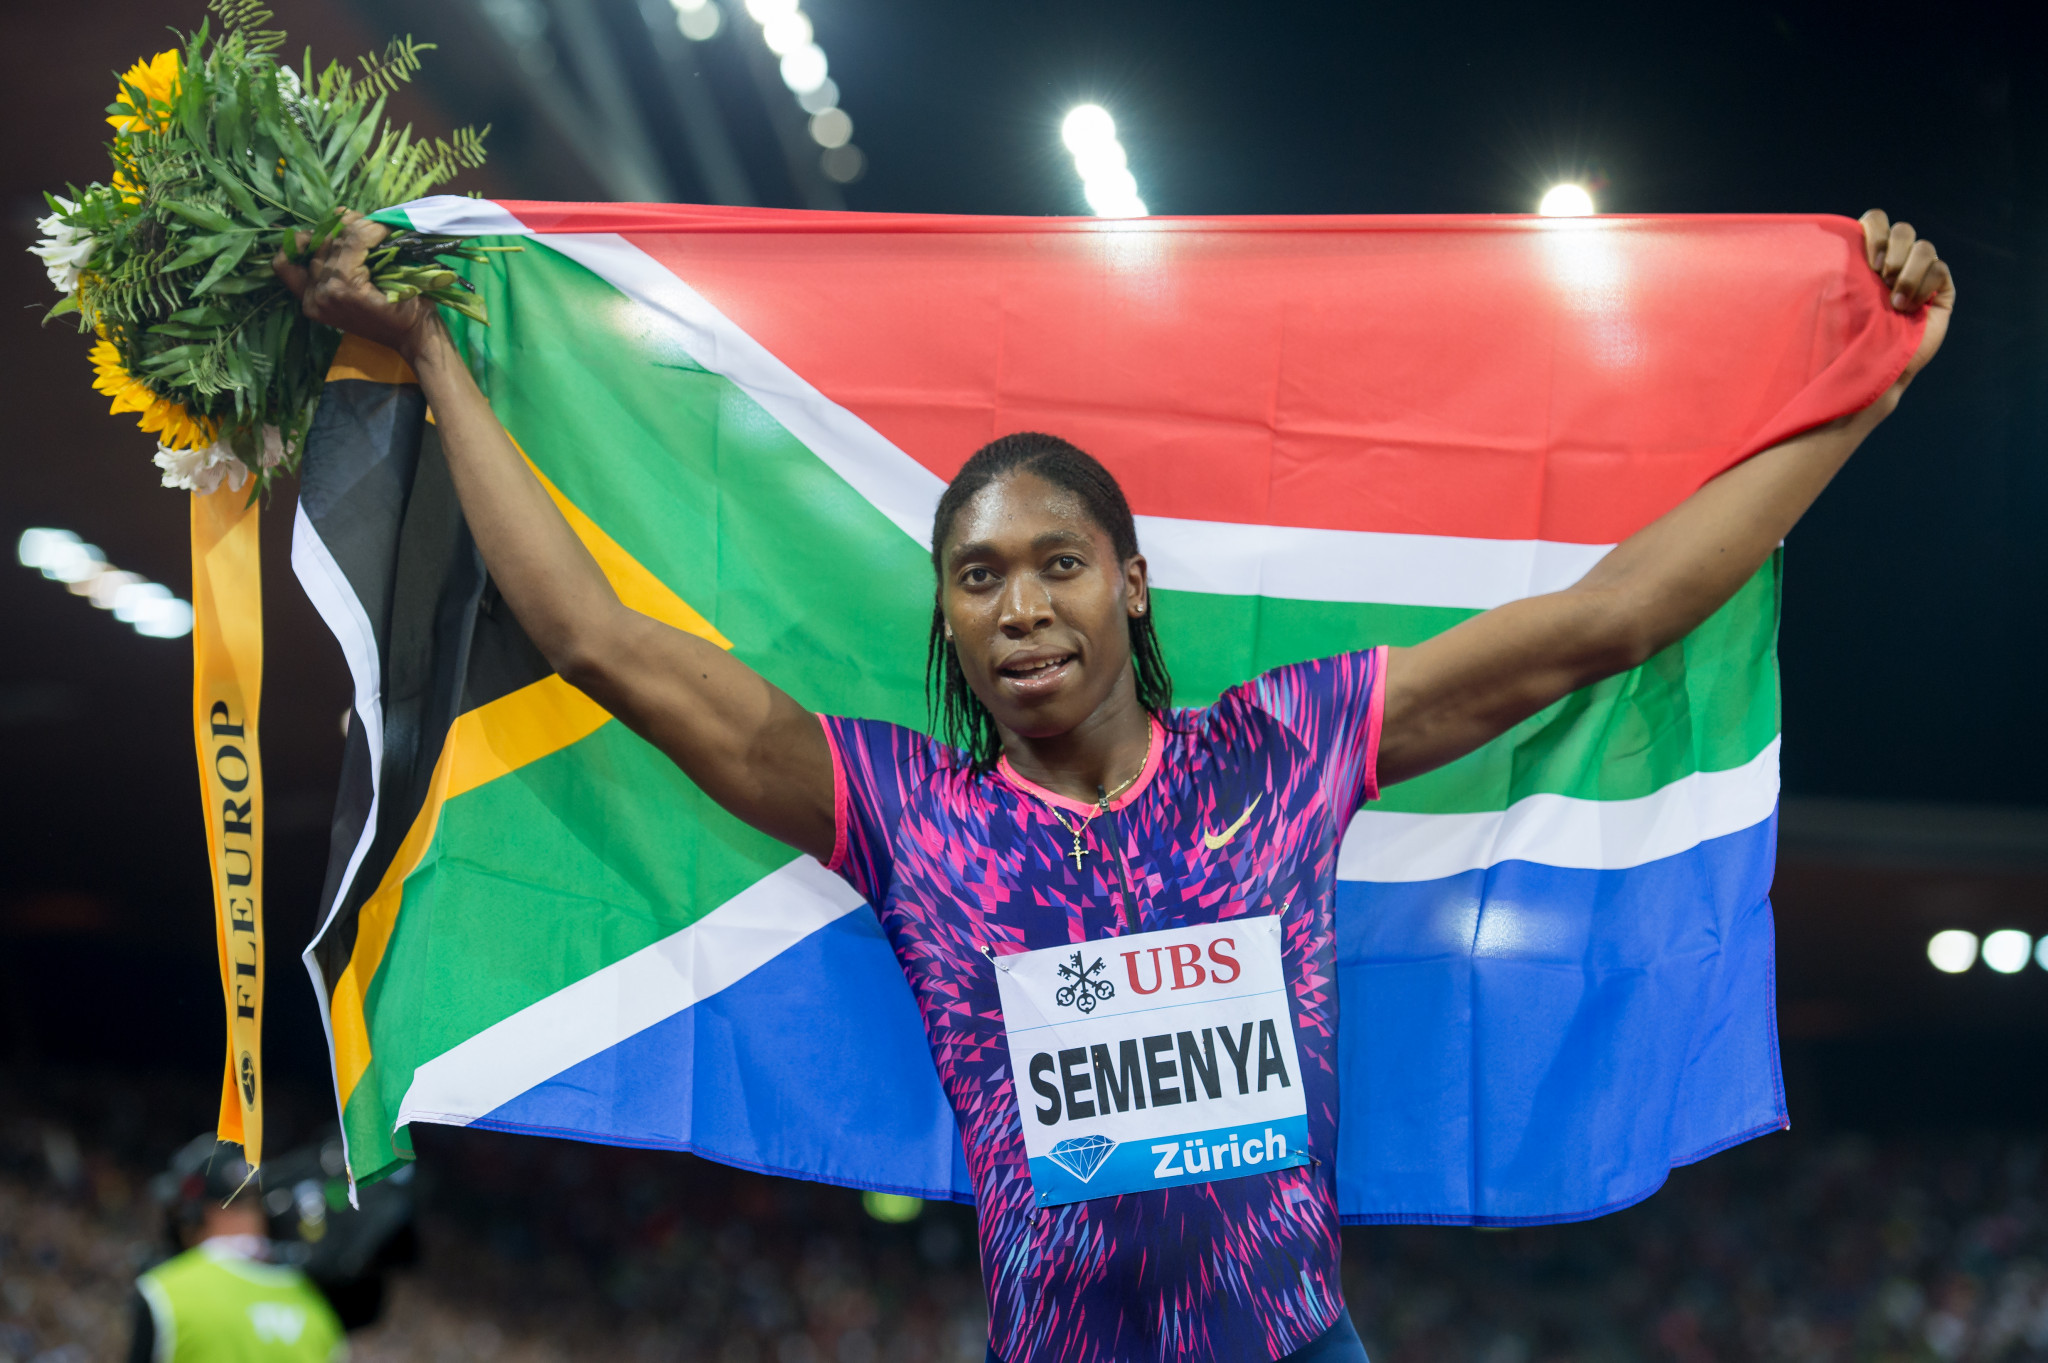 Caster Semenya will be among leading South African athletes at Gold Coast 2018 ©Getty Images